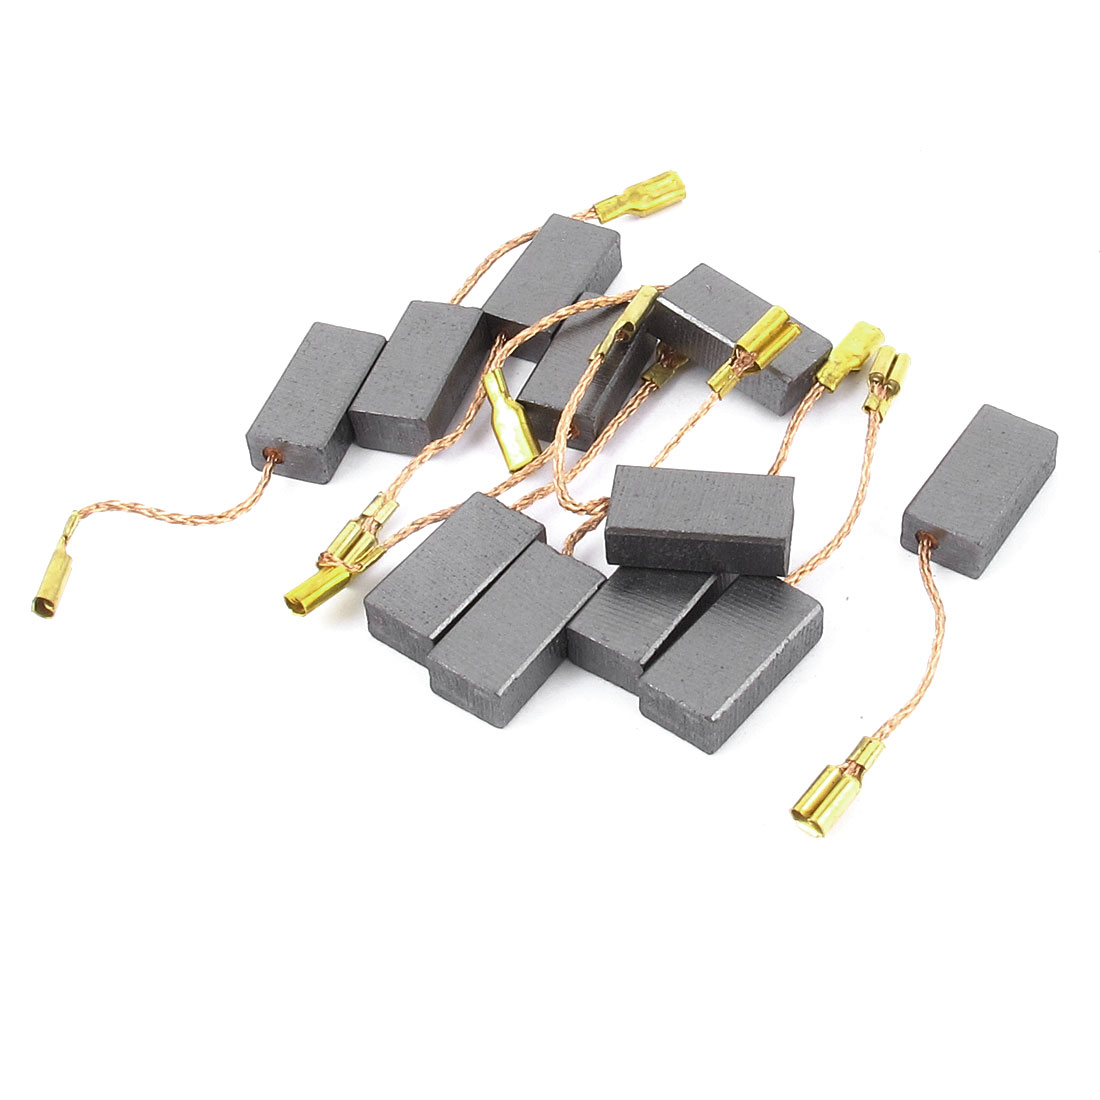 5 Pair 15mm x 8mm x 5mm Motor Carbon Brushes Replacement for Air Compressor